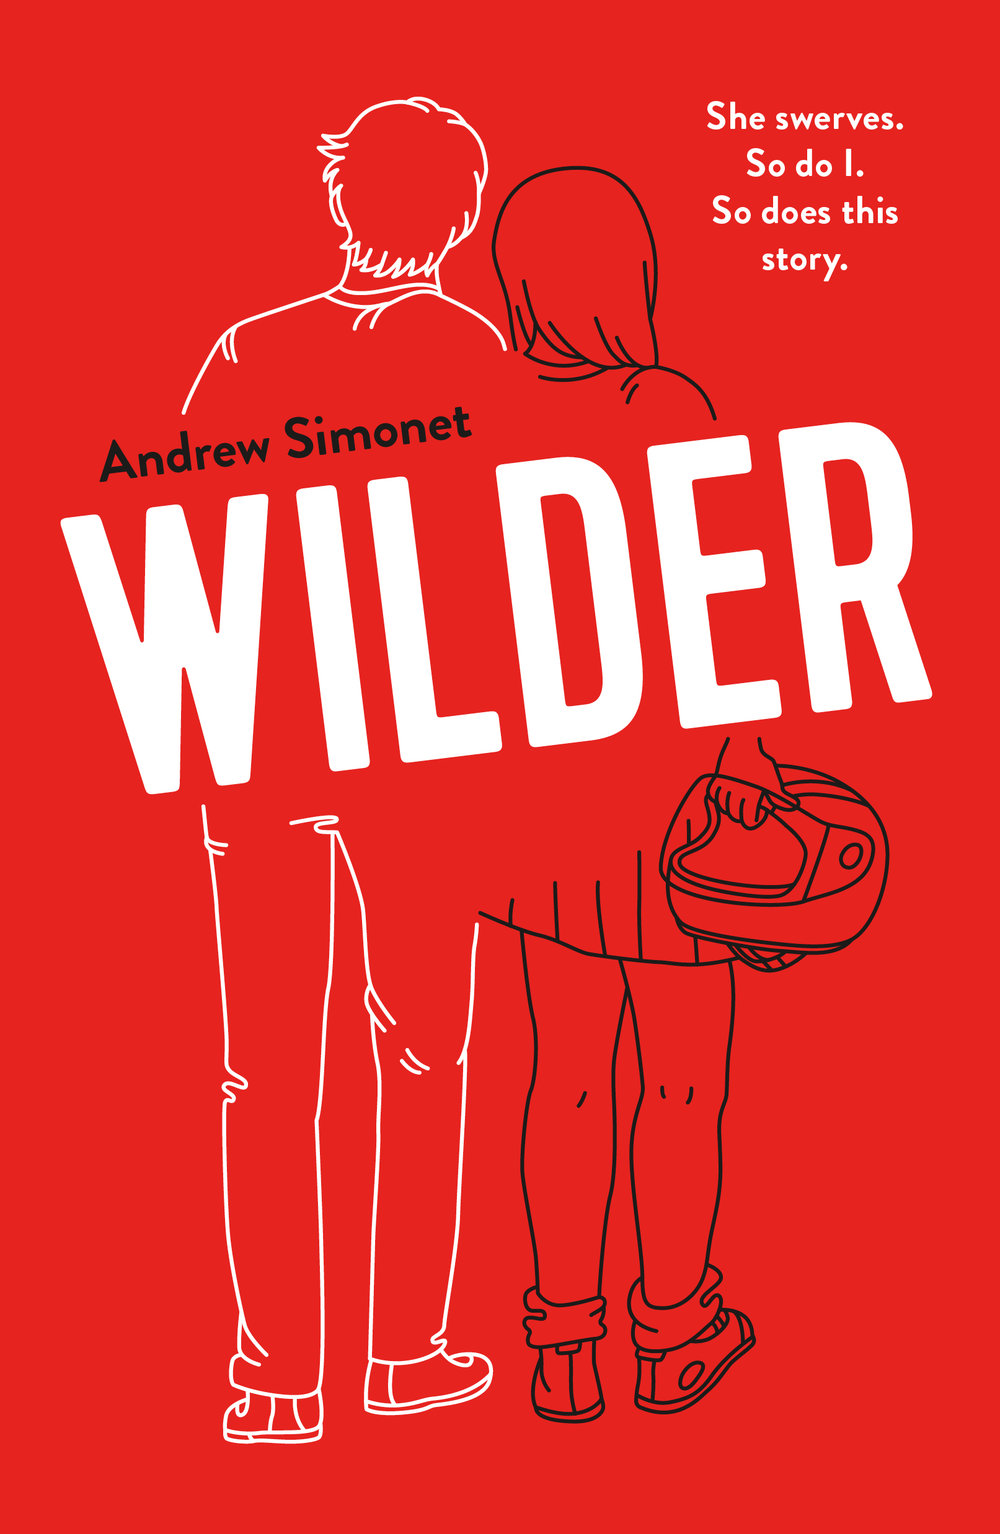 Wilder , Andrew Simonet  For Farrar, Straus and Giroux BYR. Illustration by Aimee Fleck.